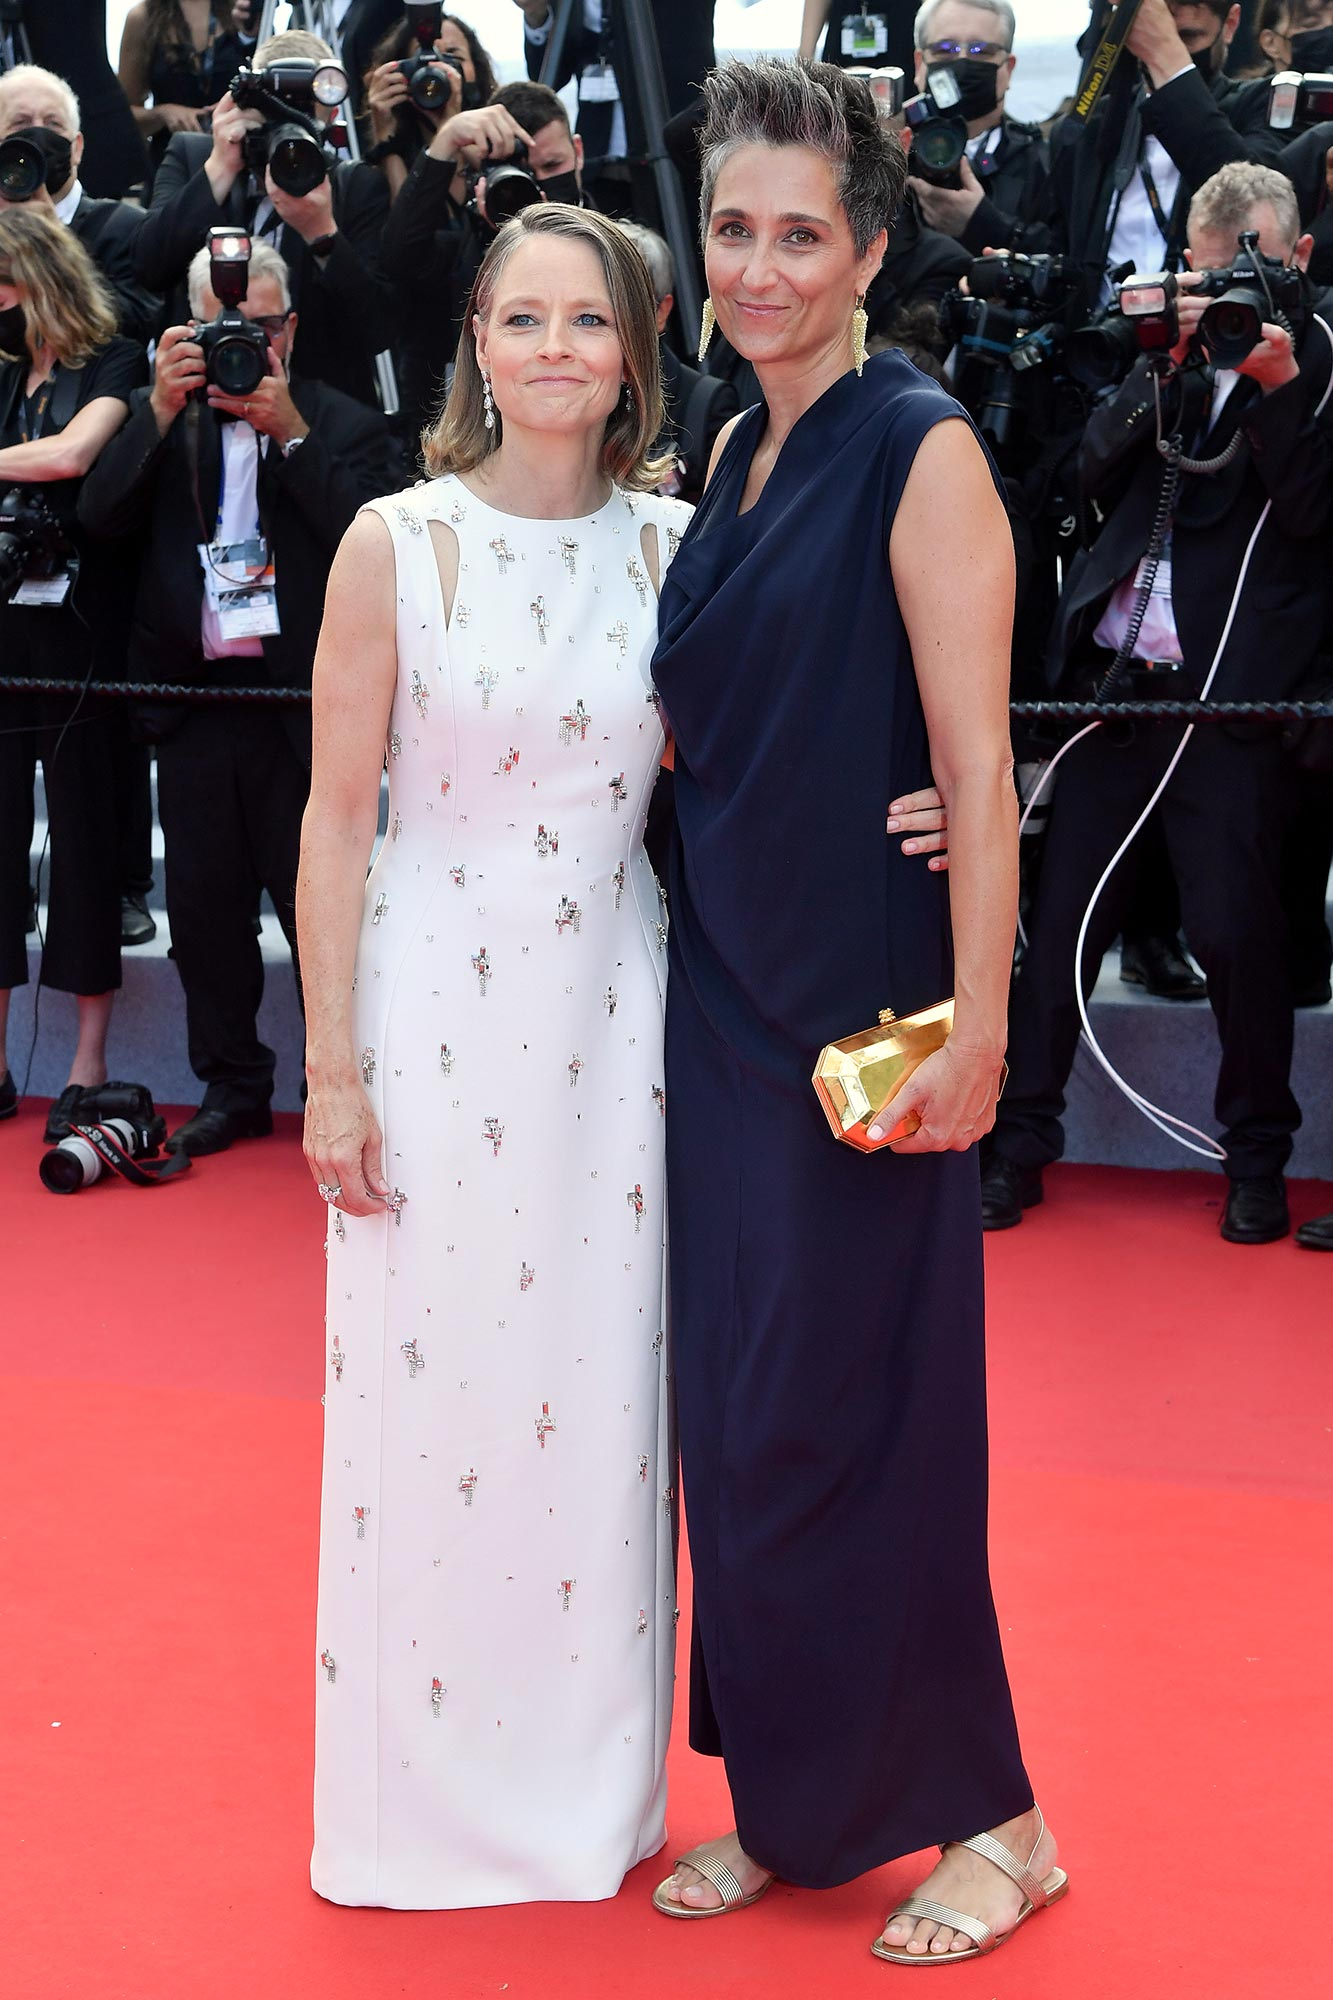 Cannes 2021 Red Carpet - Jodie Foster and Alexandra Hedison